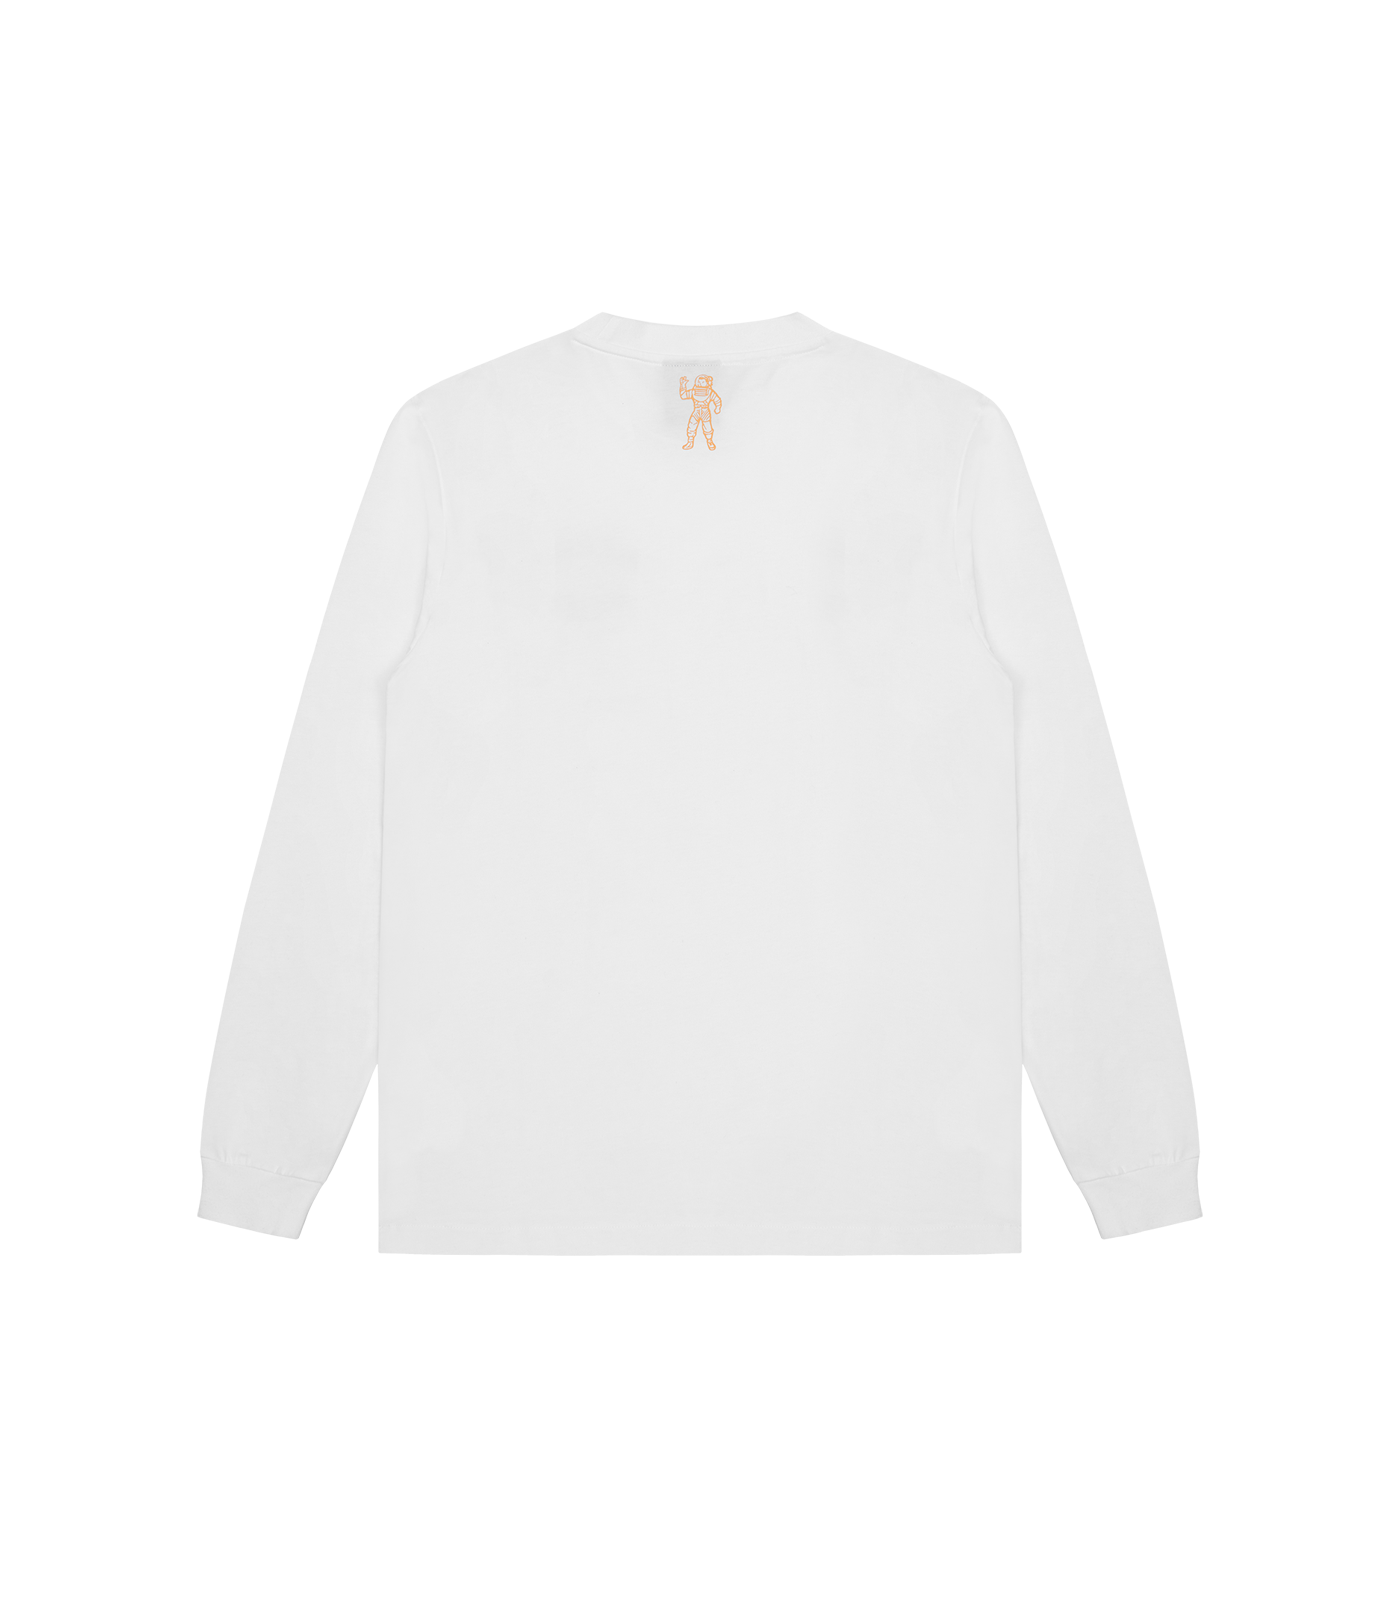 STRAIGHT LOGO L/S T-SHIRT - WHITE